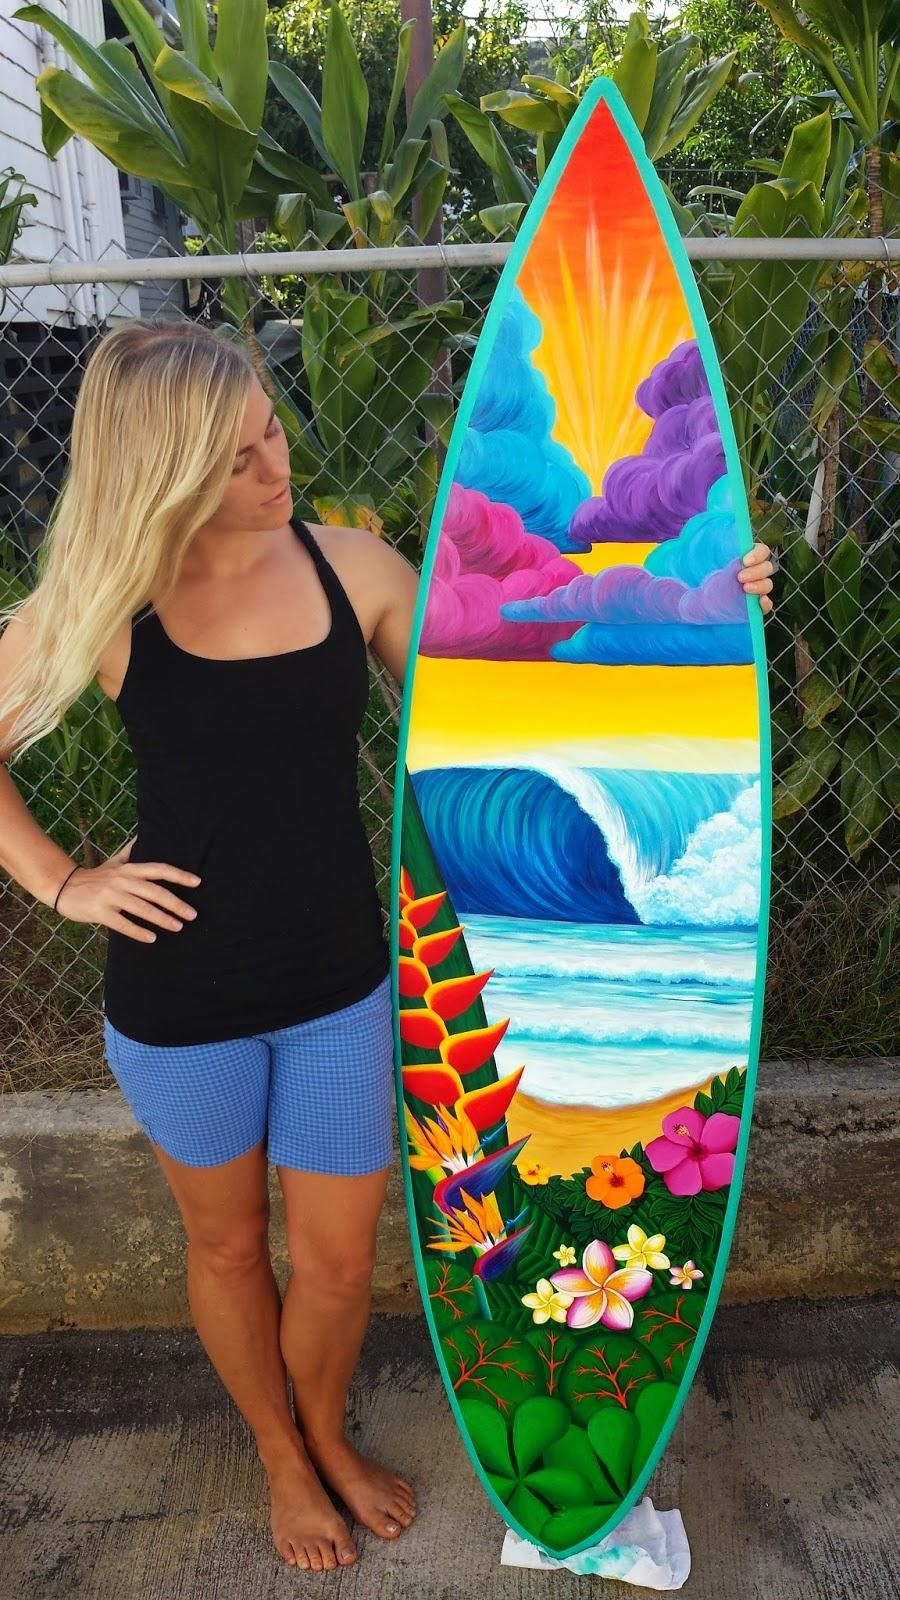 Heaven On Earth Surfboard Wall Art | Stephanie Boinay Art Pertaining To Surf Board Wall Art (View 11 of 20)